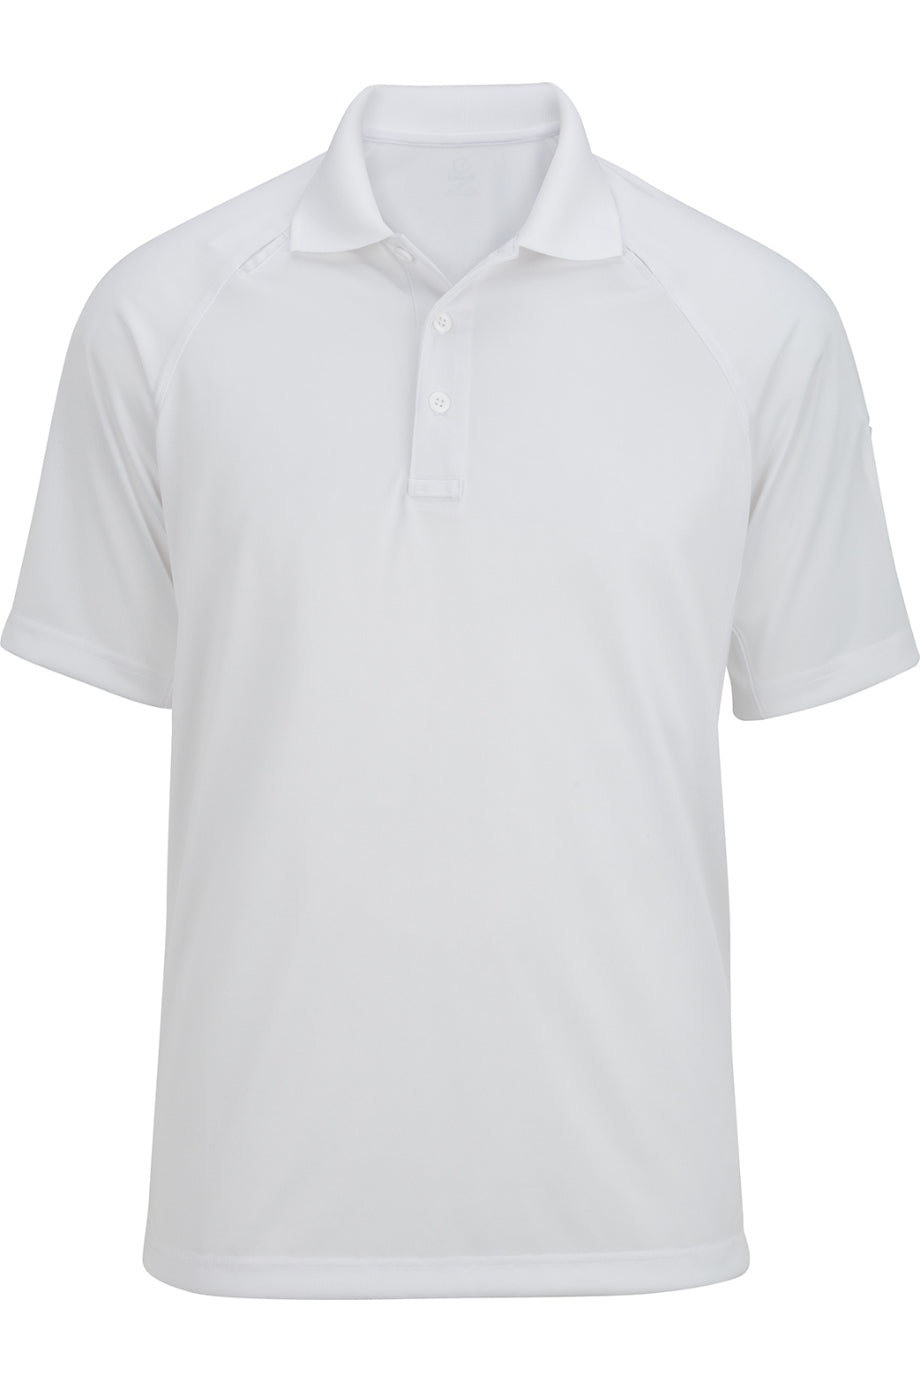 White Edwards Mens Tactical Snag-Proof Short Sleeve Polo